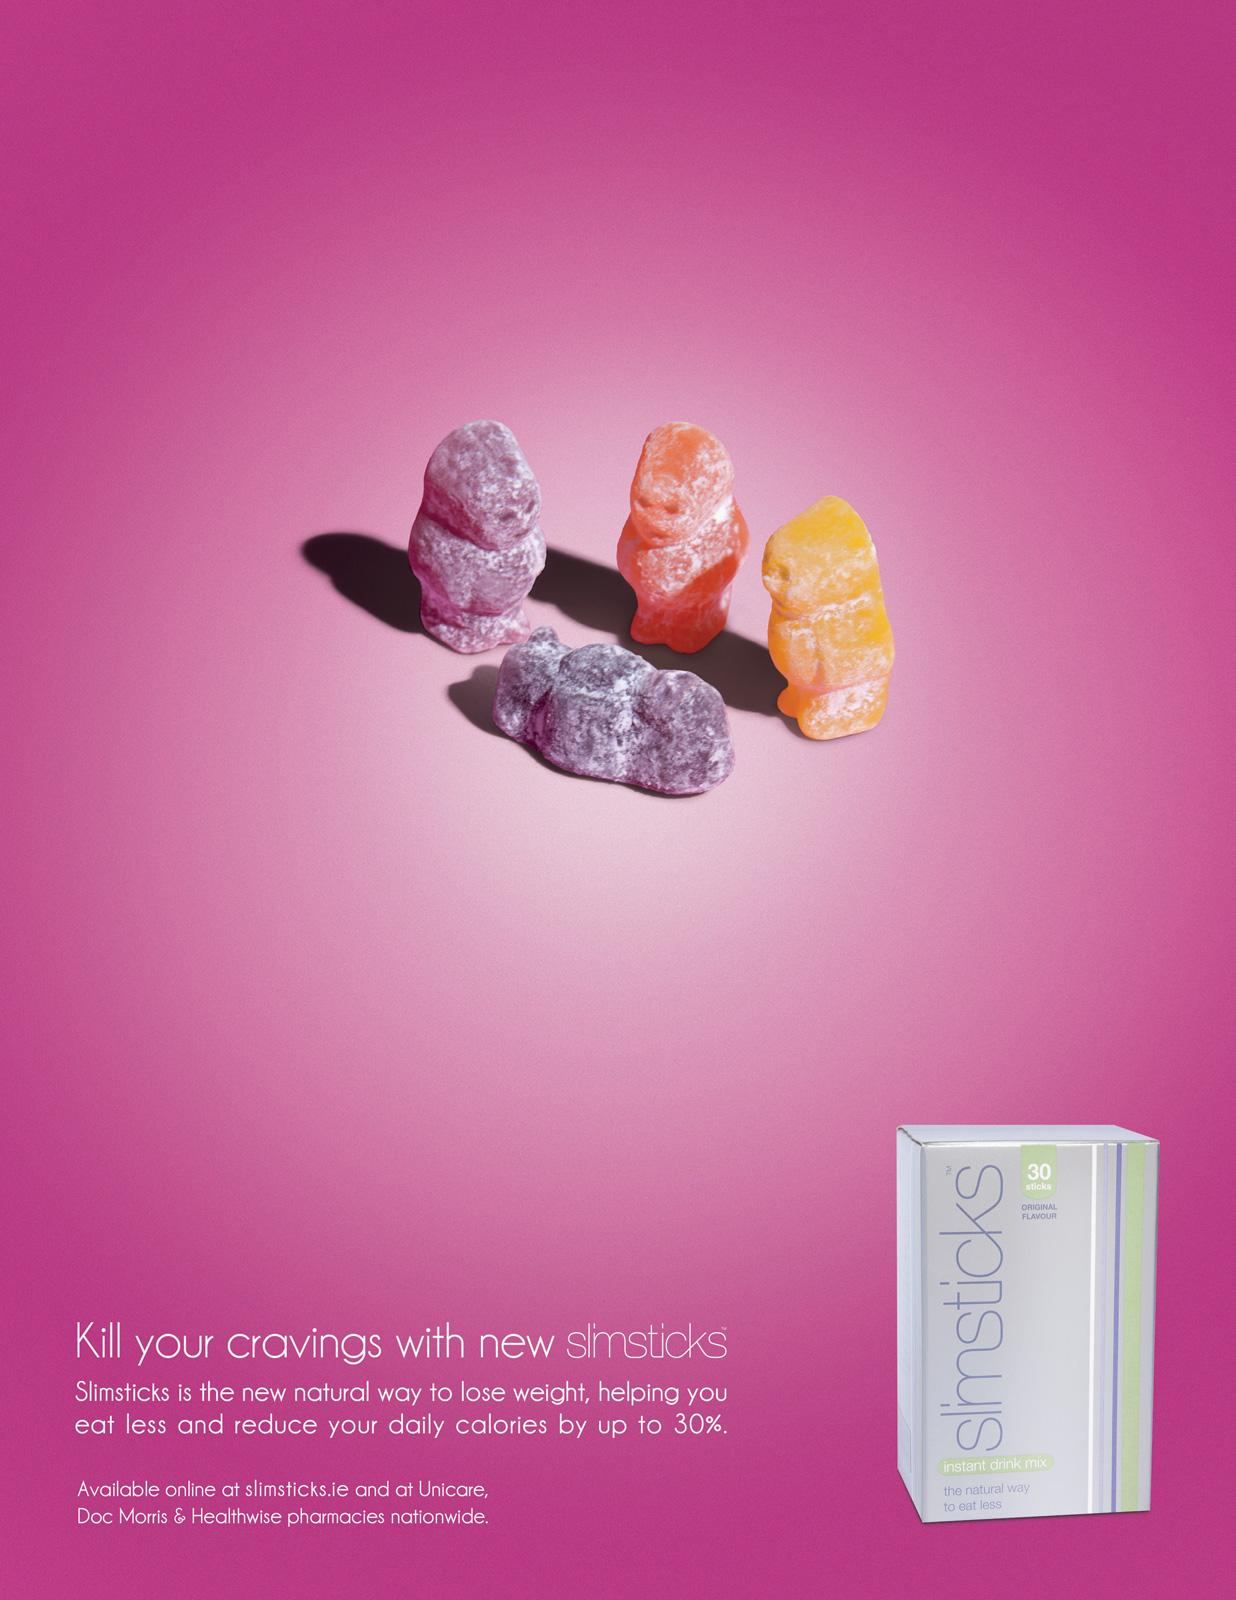 Slimsticks Print Ad -  Kill Your Cravings, Dead Jellybaby